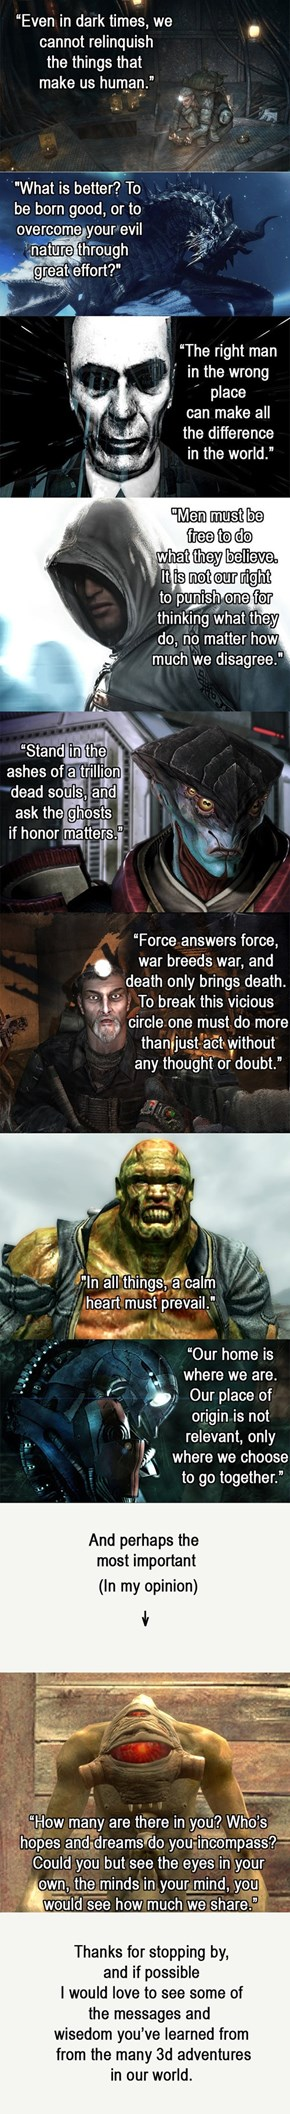 Wisdom From Games